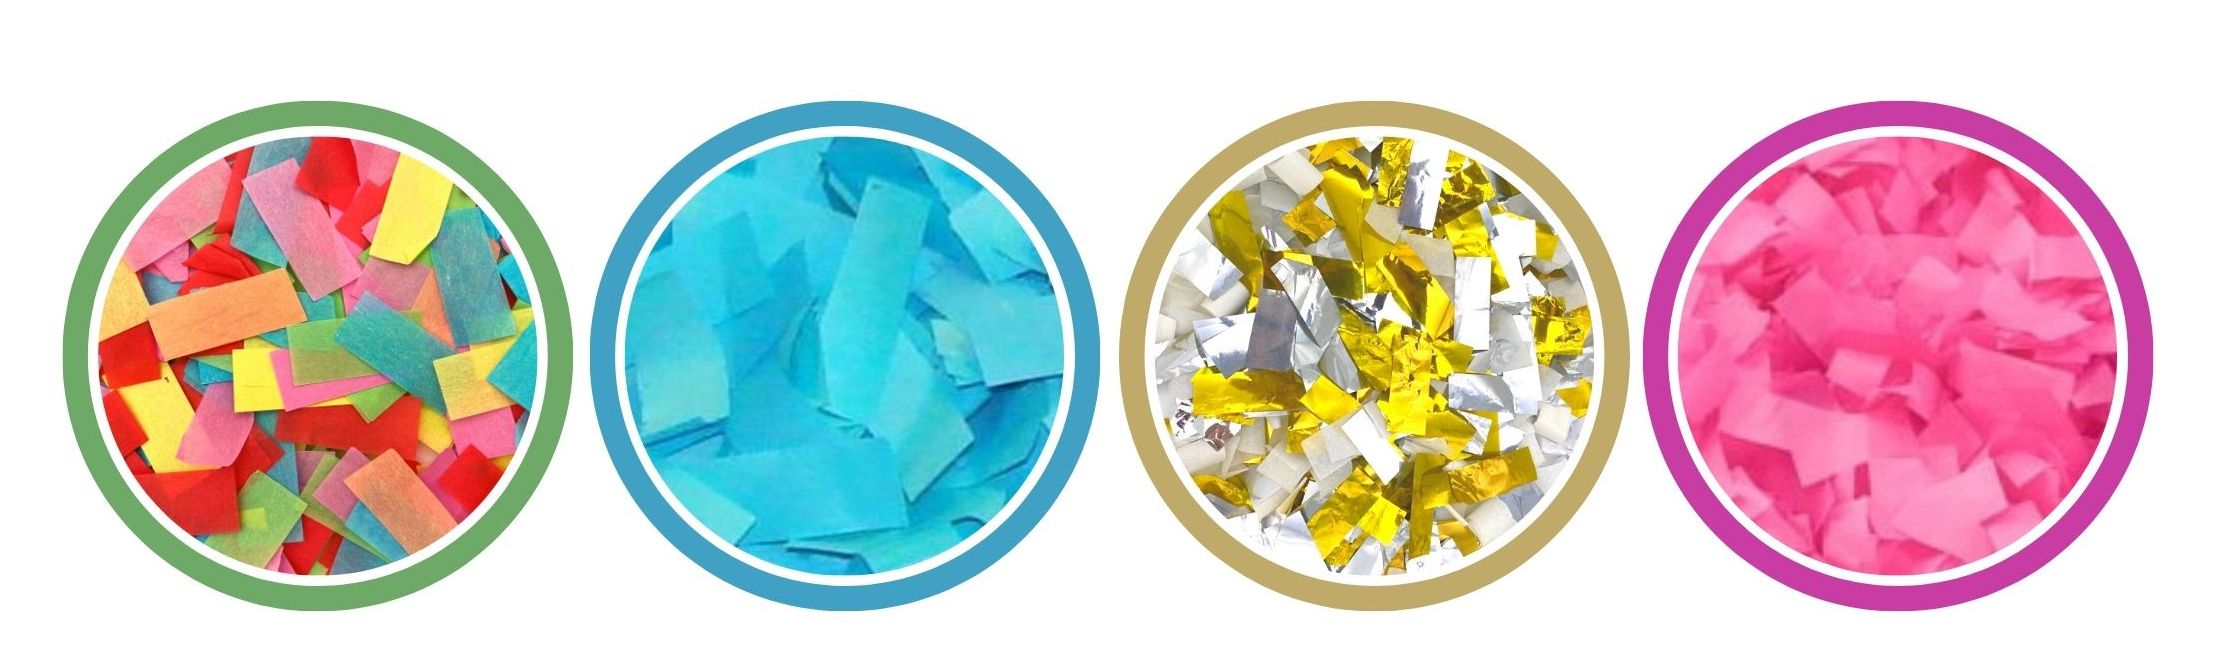 types and colors of confetti for confetti poppers